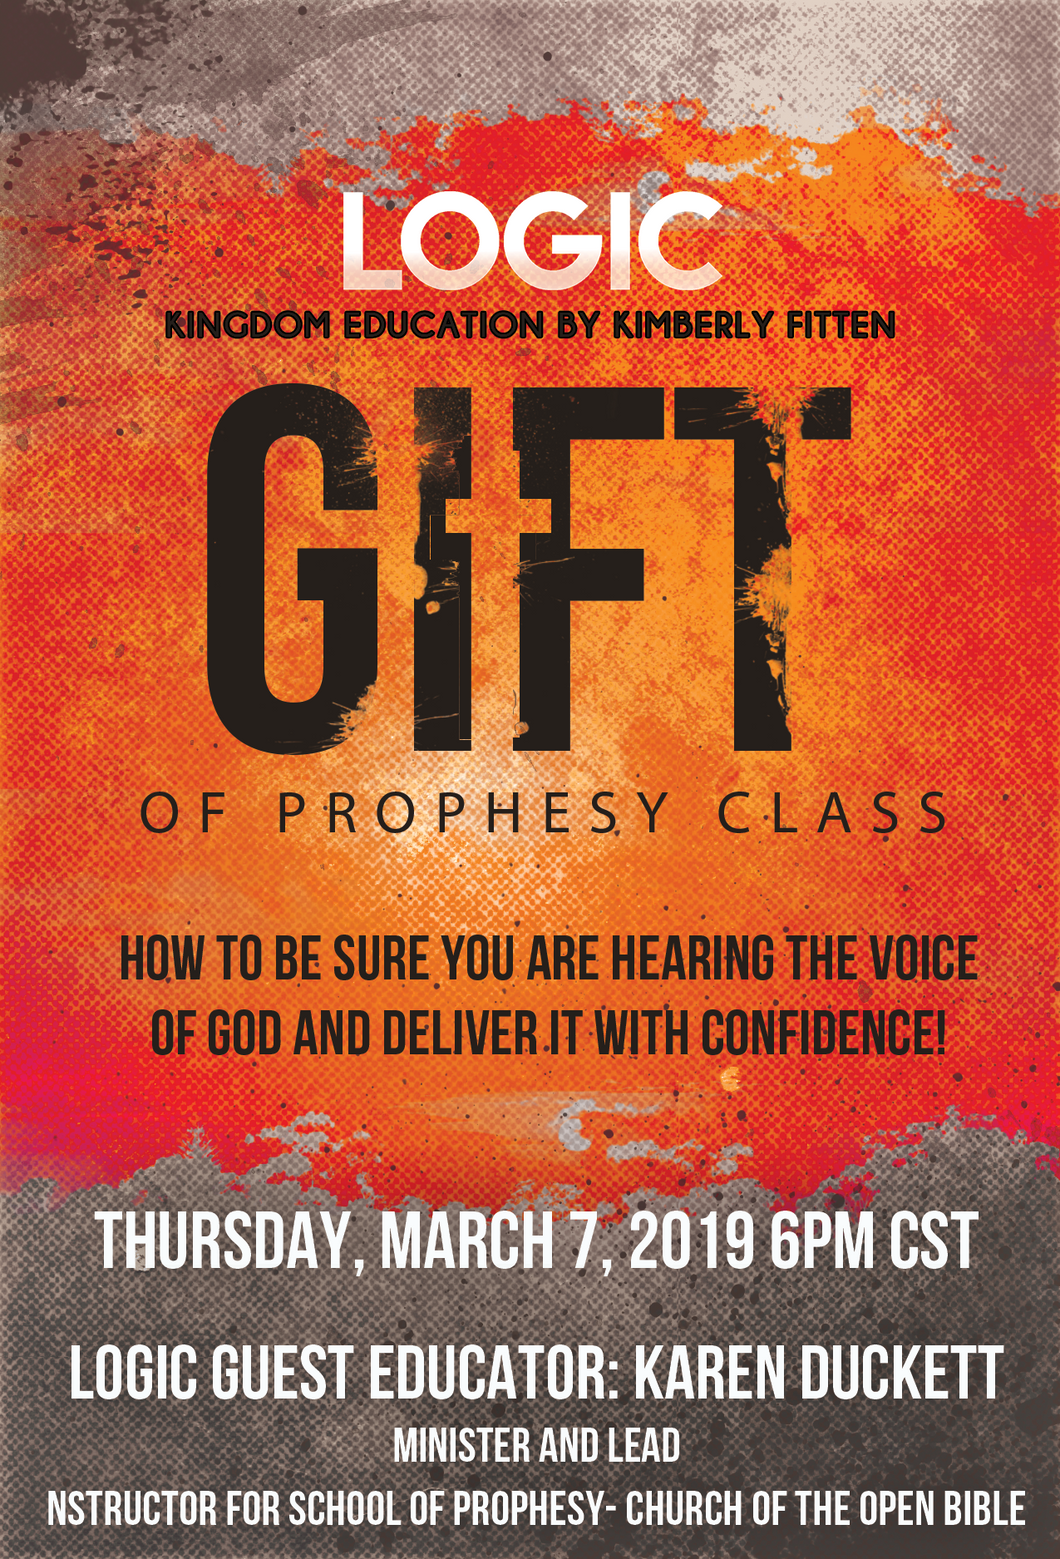 LOGIC: The Gift of Prophesy Class